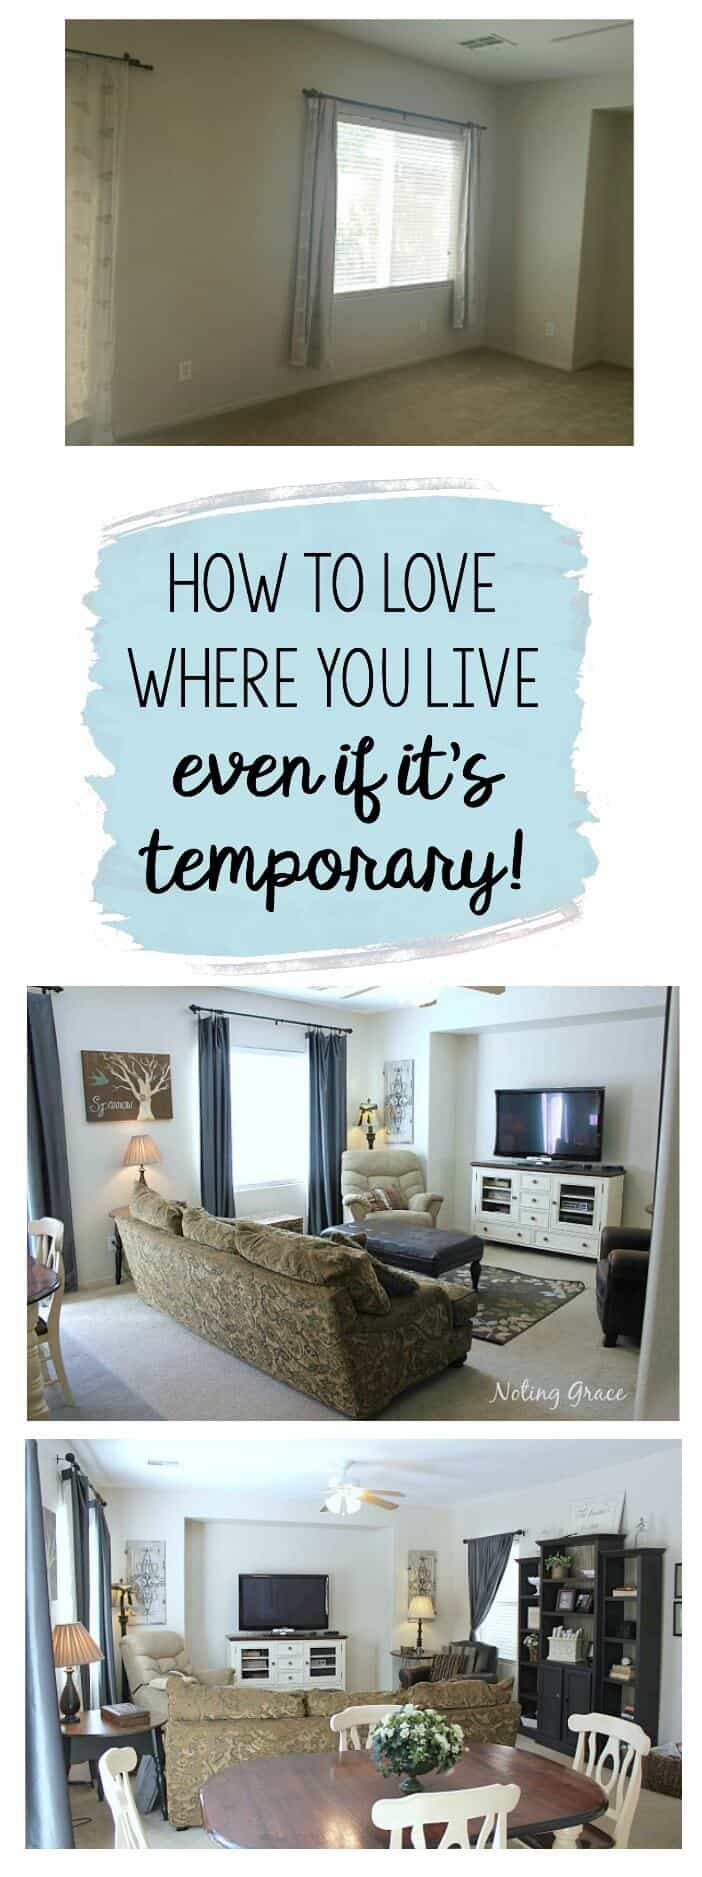 Decorating a Rental - how to love where you live, even if it's temporary!